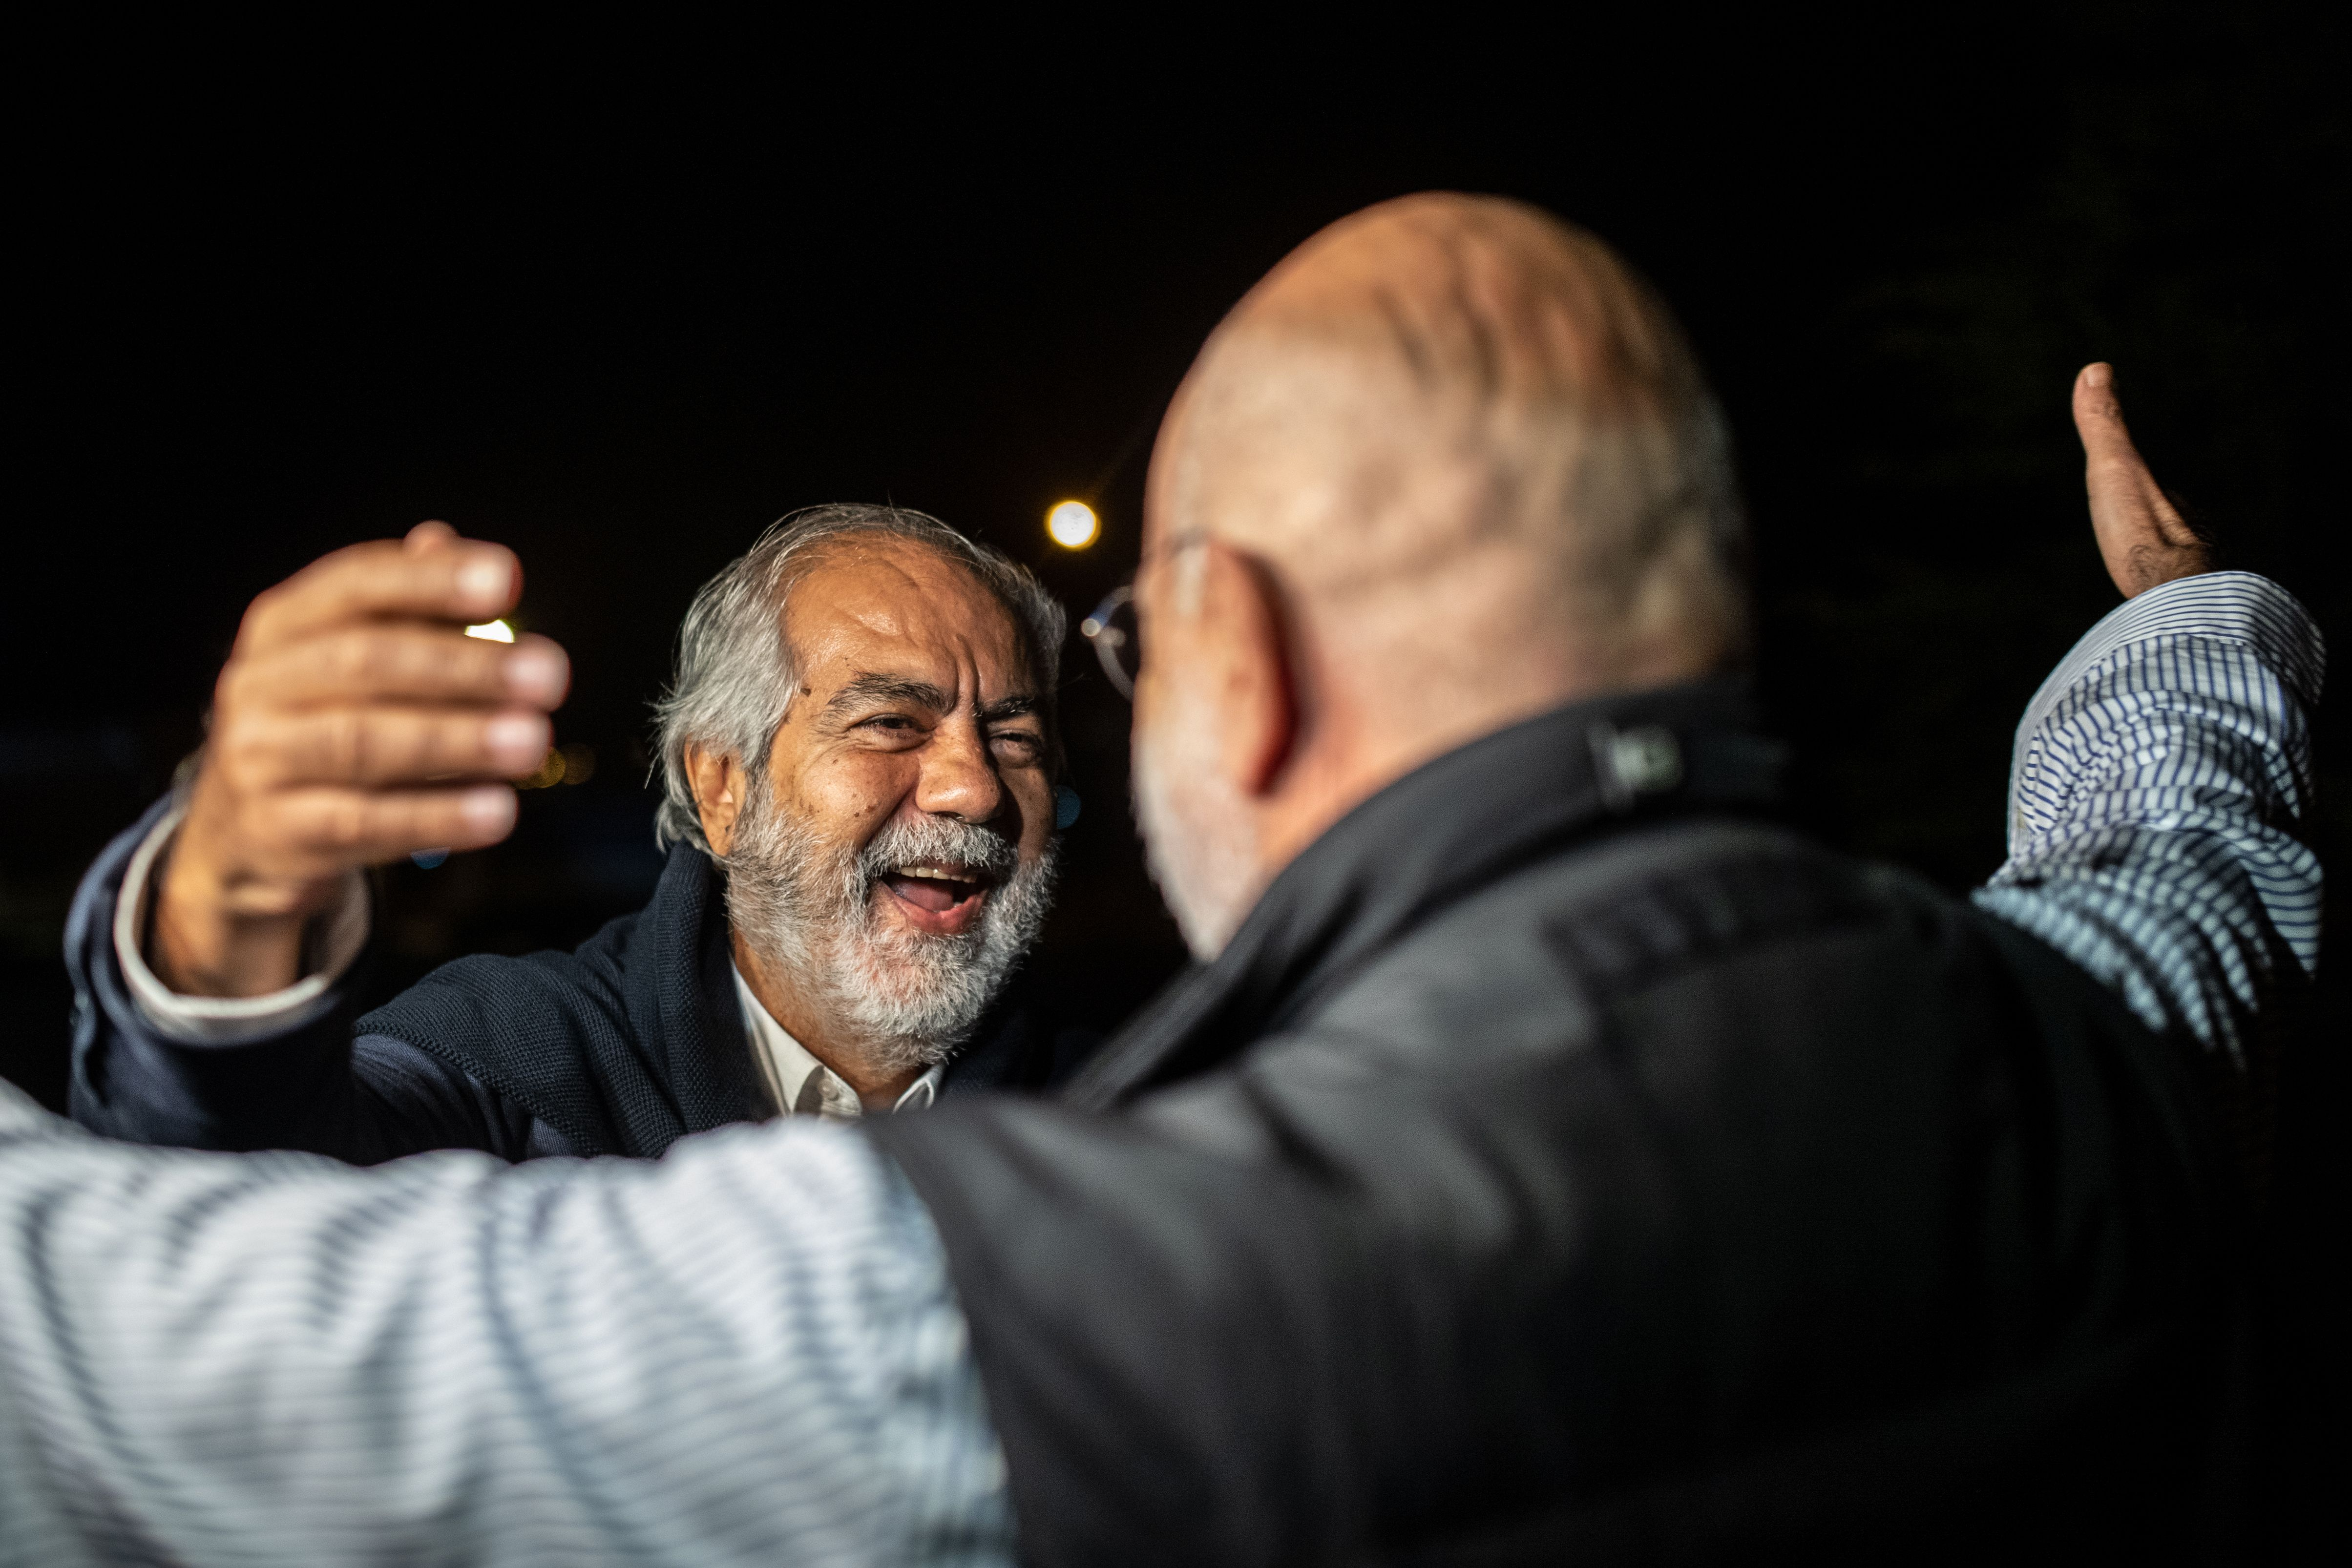 Turkish journalist and writer Ahmet Altan embraces his brother Mehmet (L) after being released on Nov. 4, 2019. Ahmet Altan was re-arrested a week later.